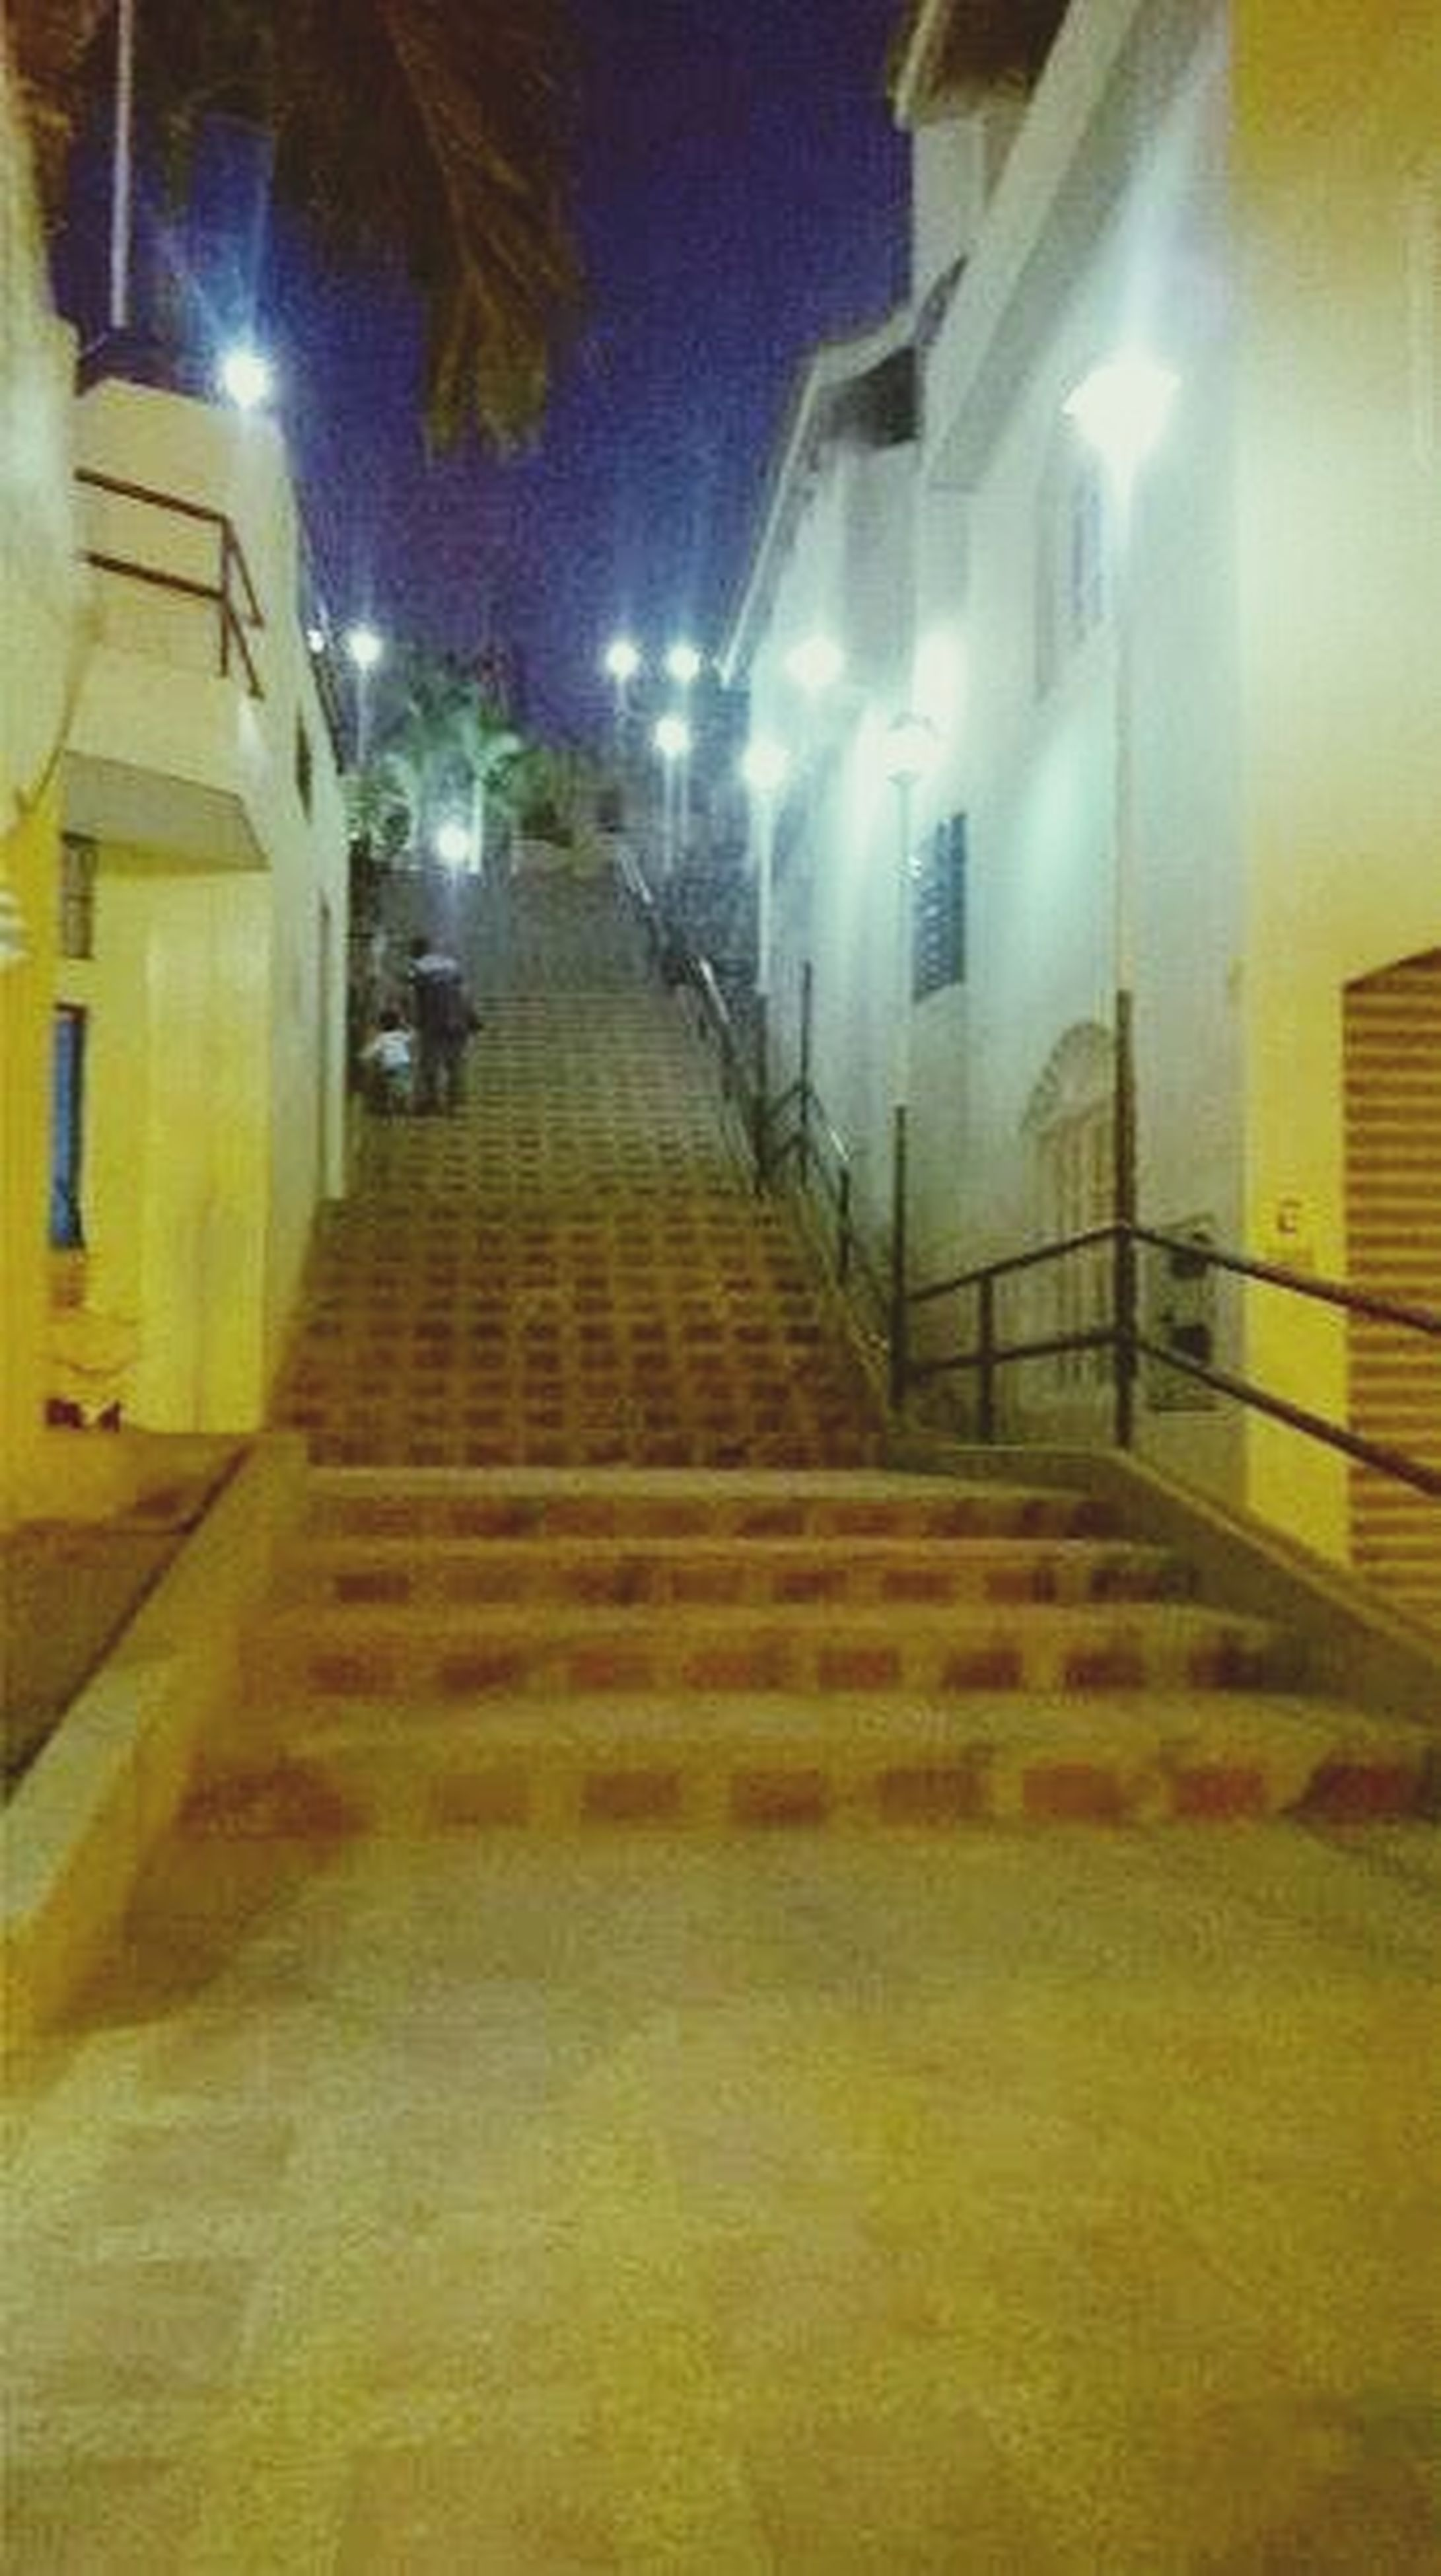 illuminated, architecture, built structure, the way forward, indoors, building exterior, night, lighting equipment, building, steps, wall - building feature, diminishing perspective, light - natural phenomenon, steps and staircases, corridor, empty, electric light, staircase, city, narrow